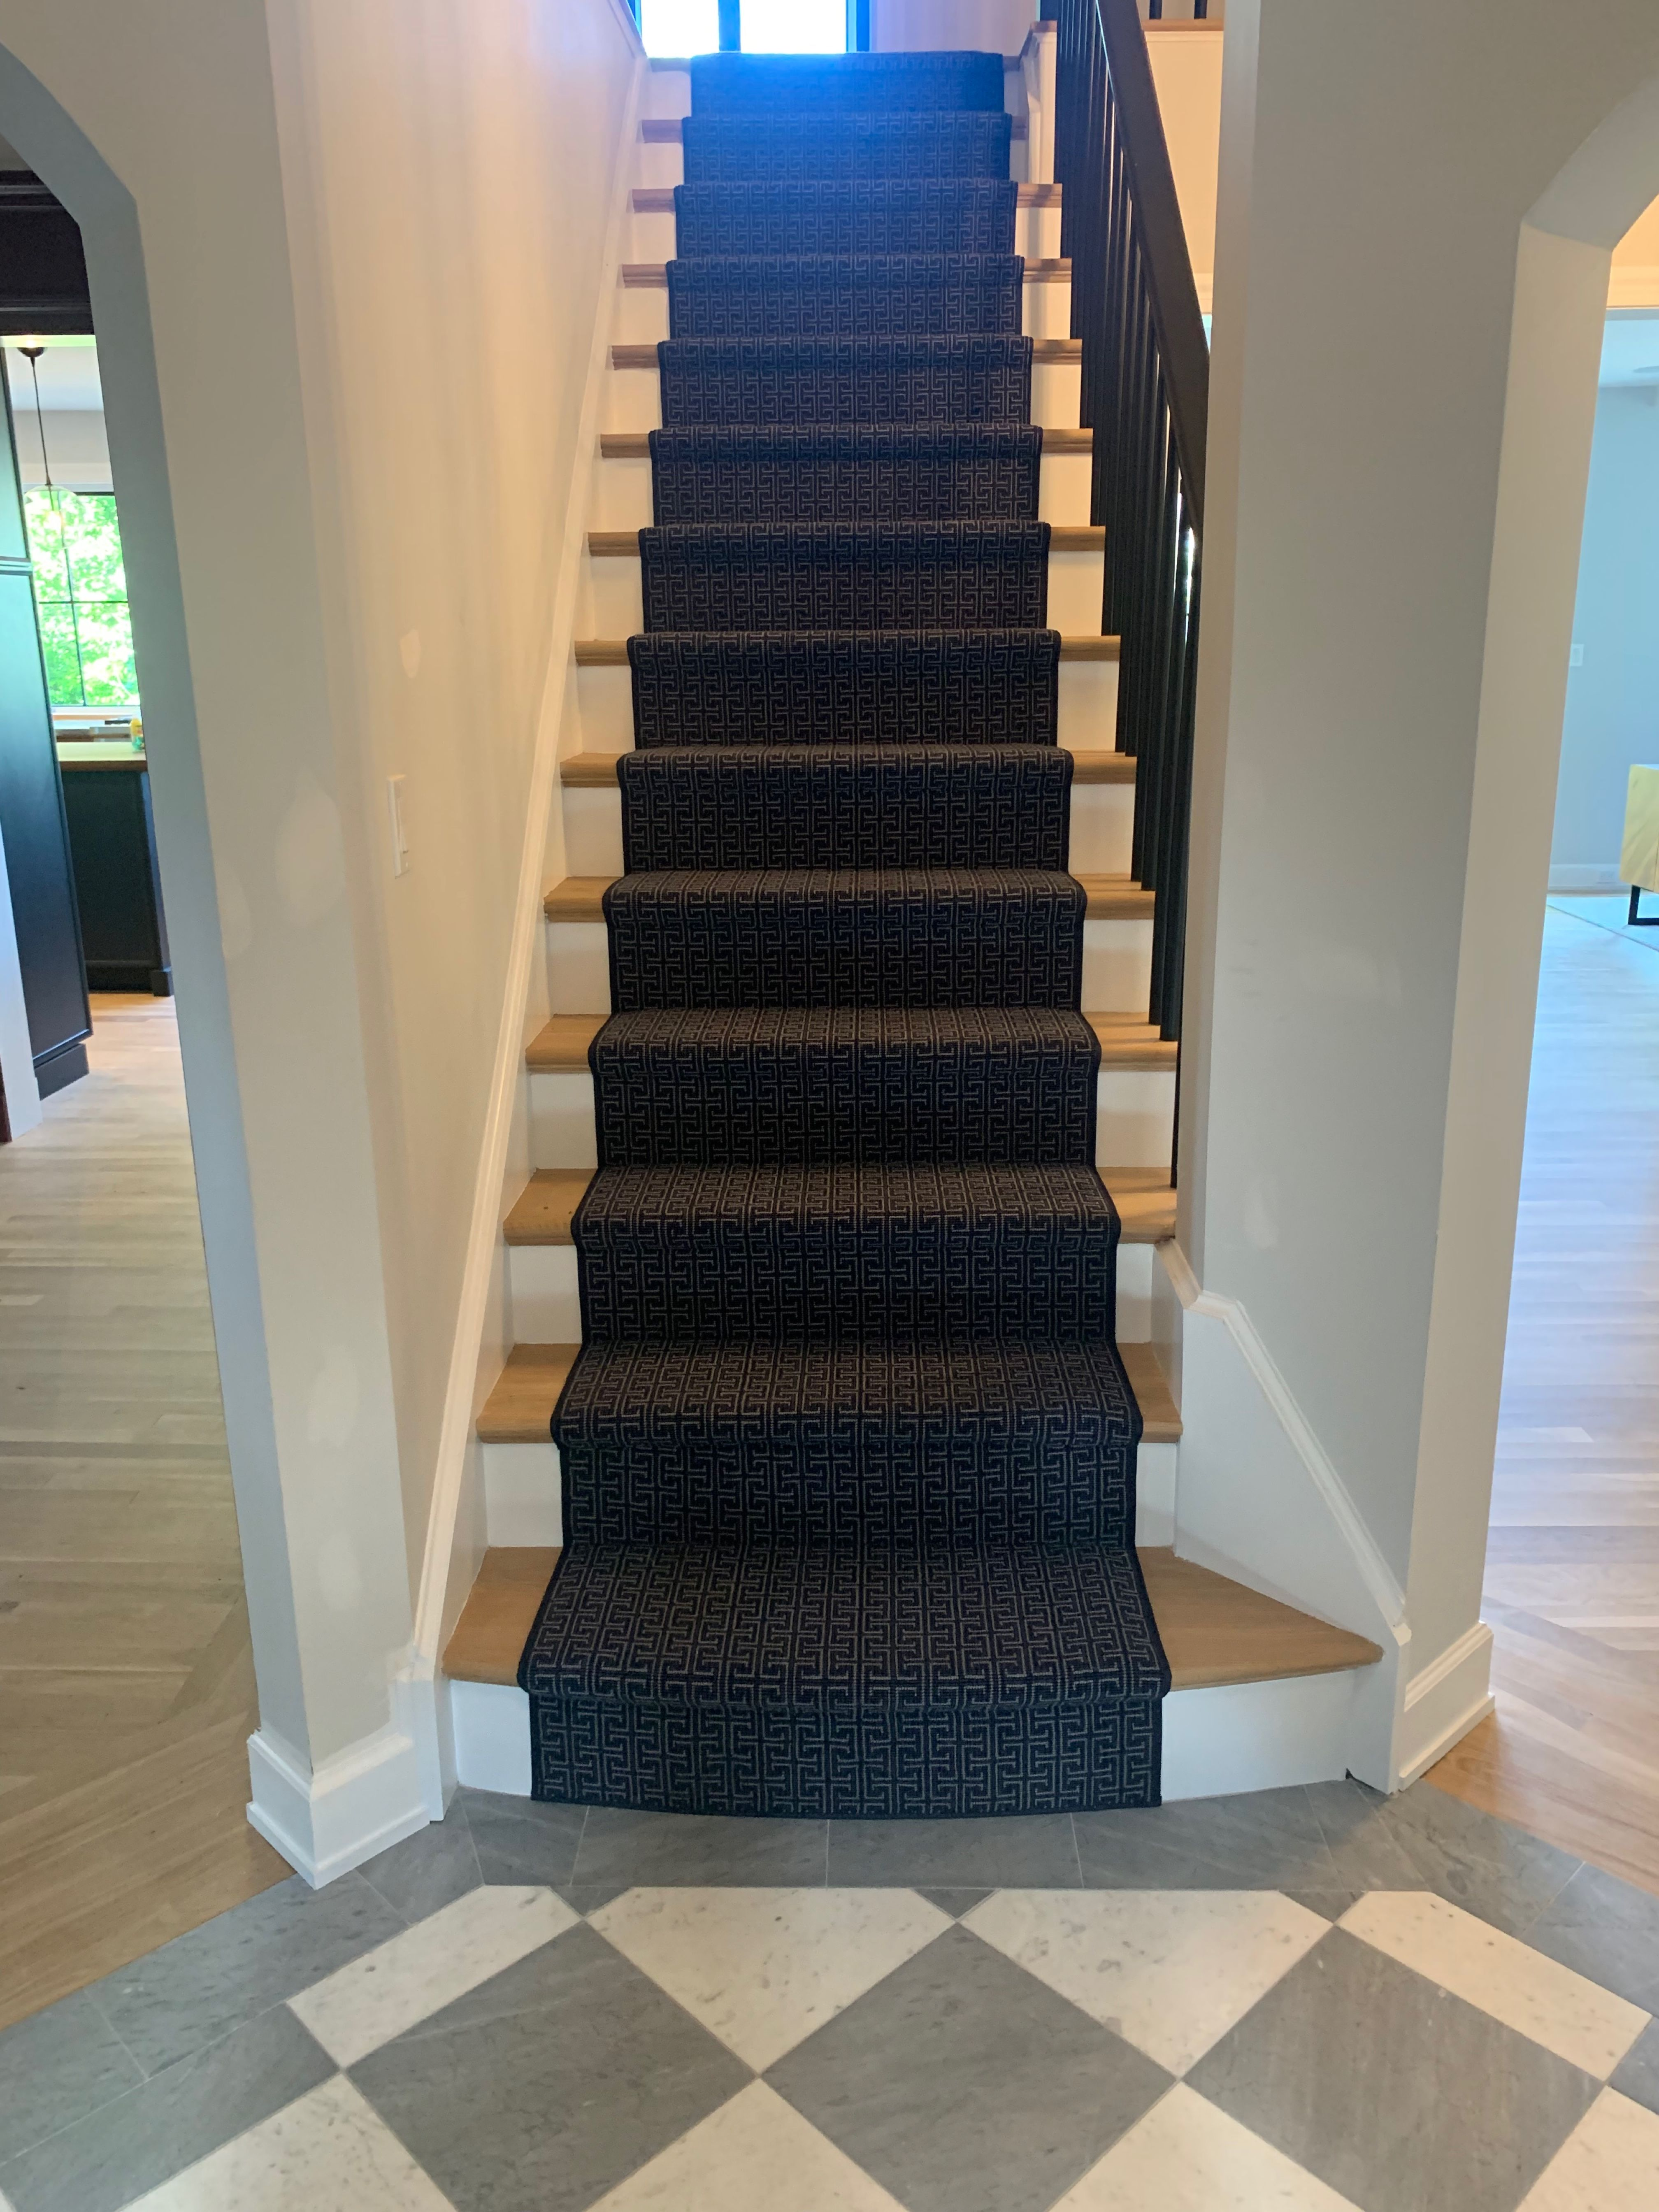 While The Indoor X2f Outdoor Carpet Options Frequently Found In Hardware Stores Are Durable And Inexpensi Dye Carpet Carpet Cleaning Hacks How To Clean Carpet